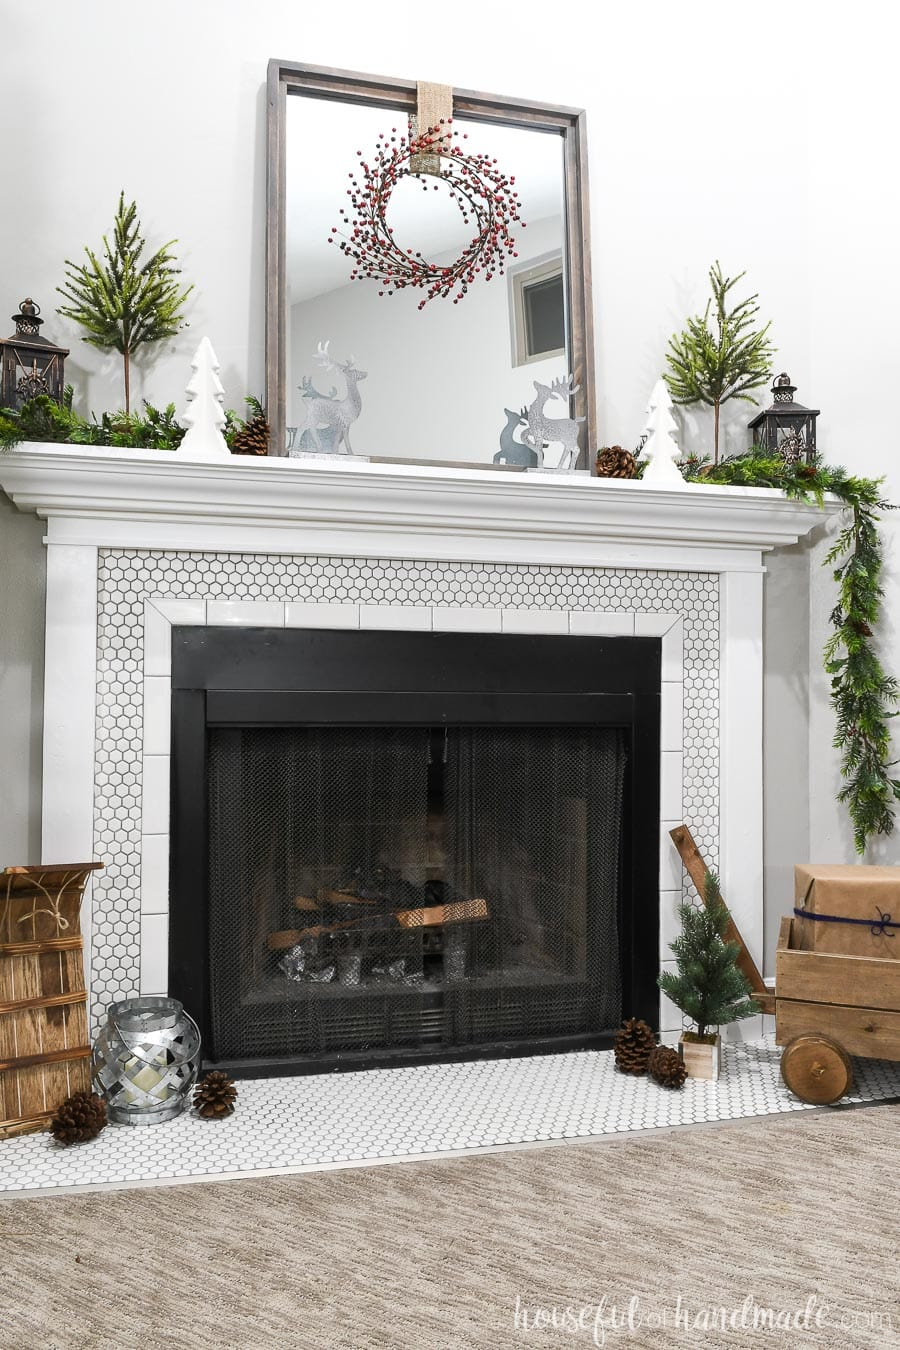 White fireplace surround with mantel decorated for Christmas with classic Christmas decorations.